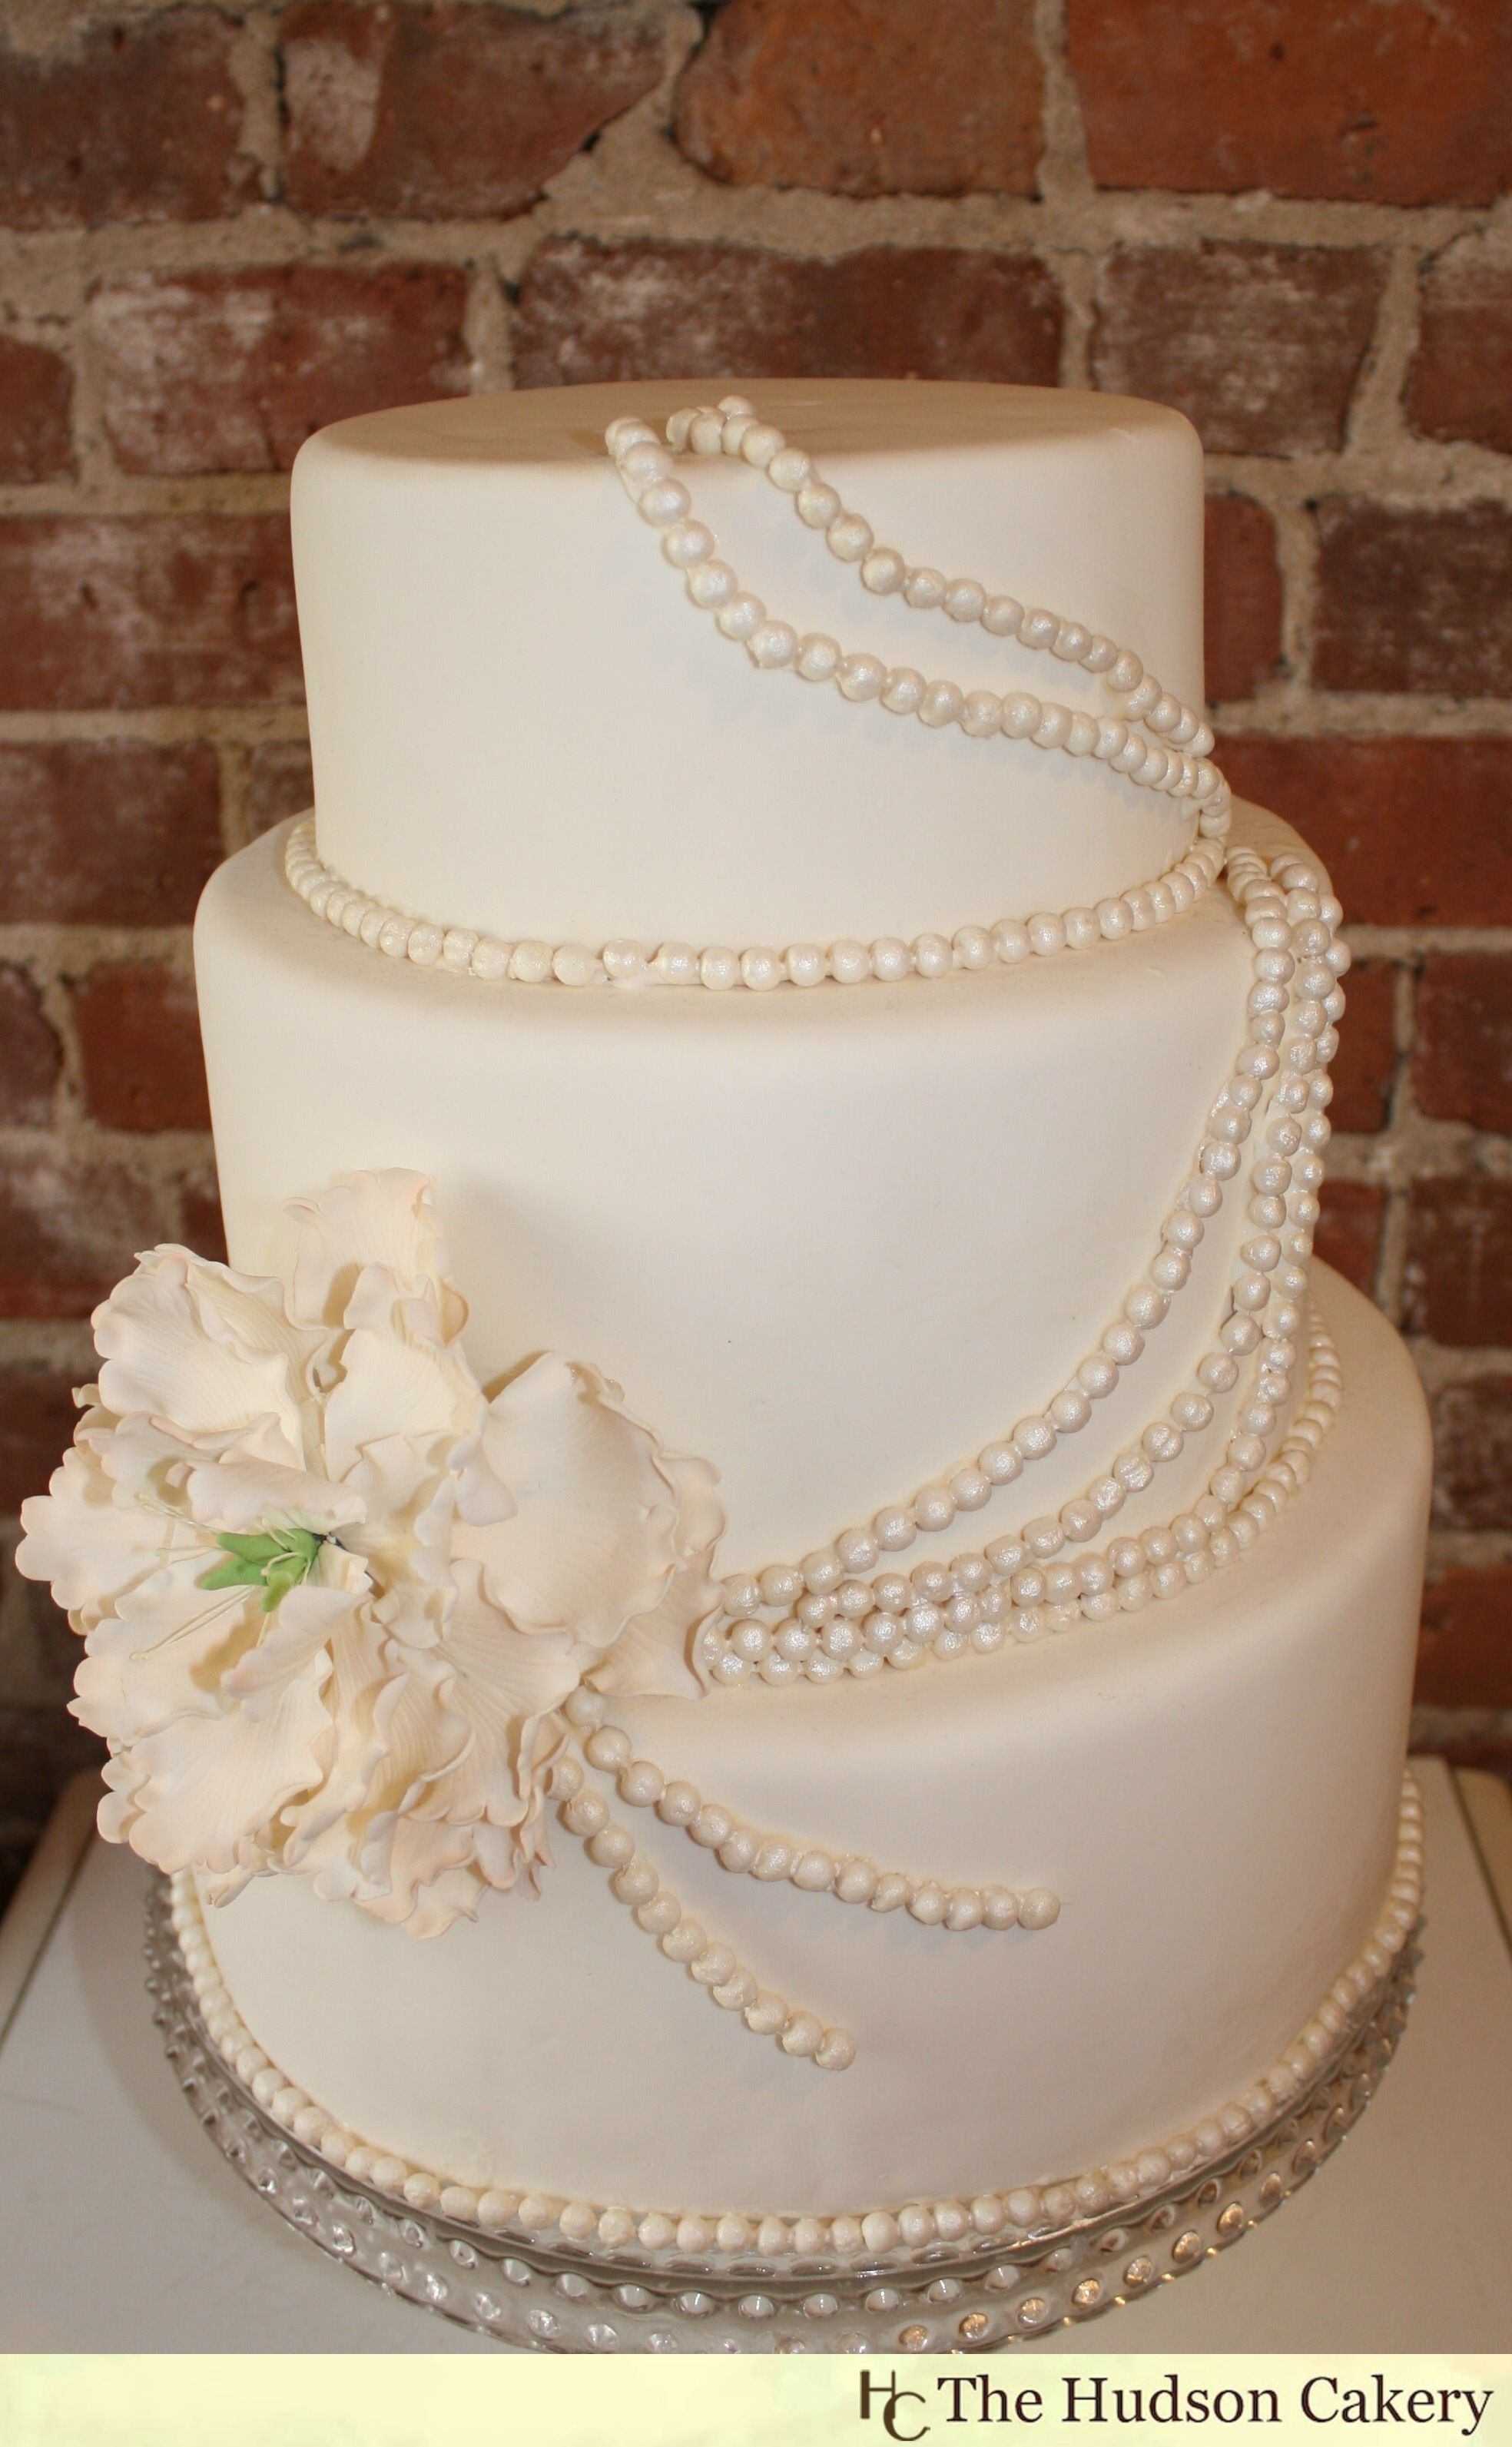 wedding cakes | One of our most popular designs, this ...